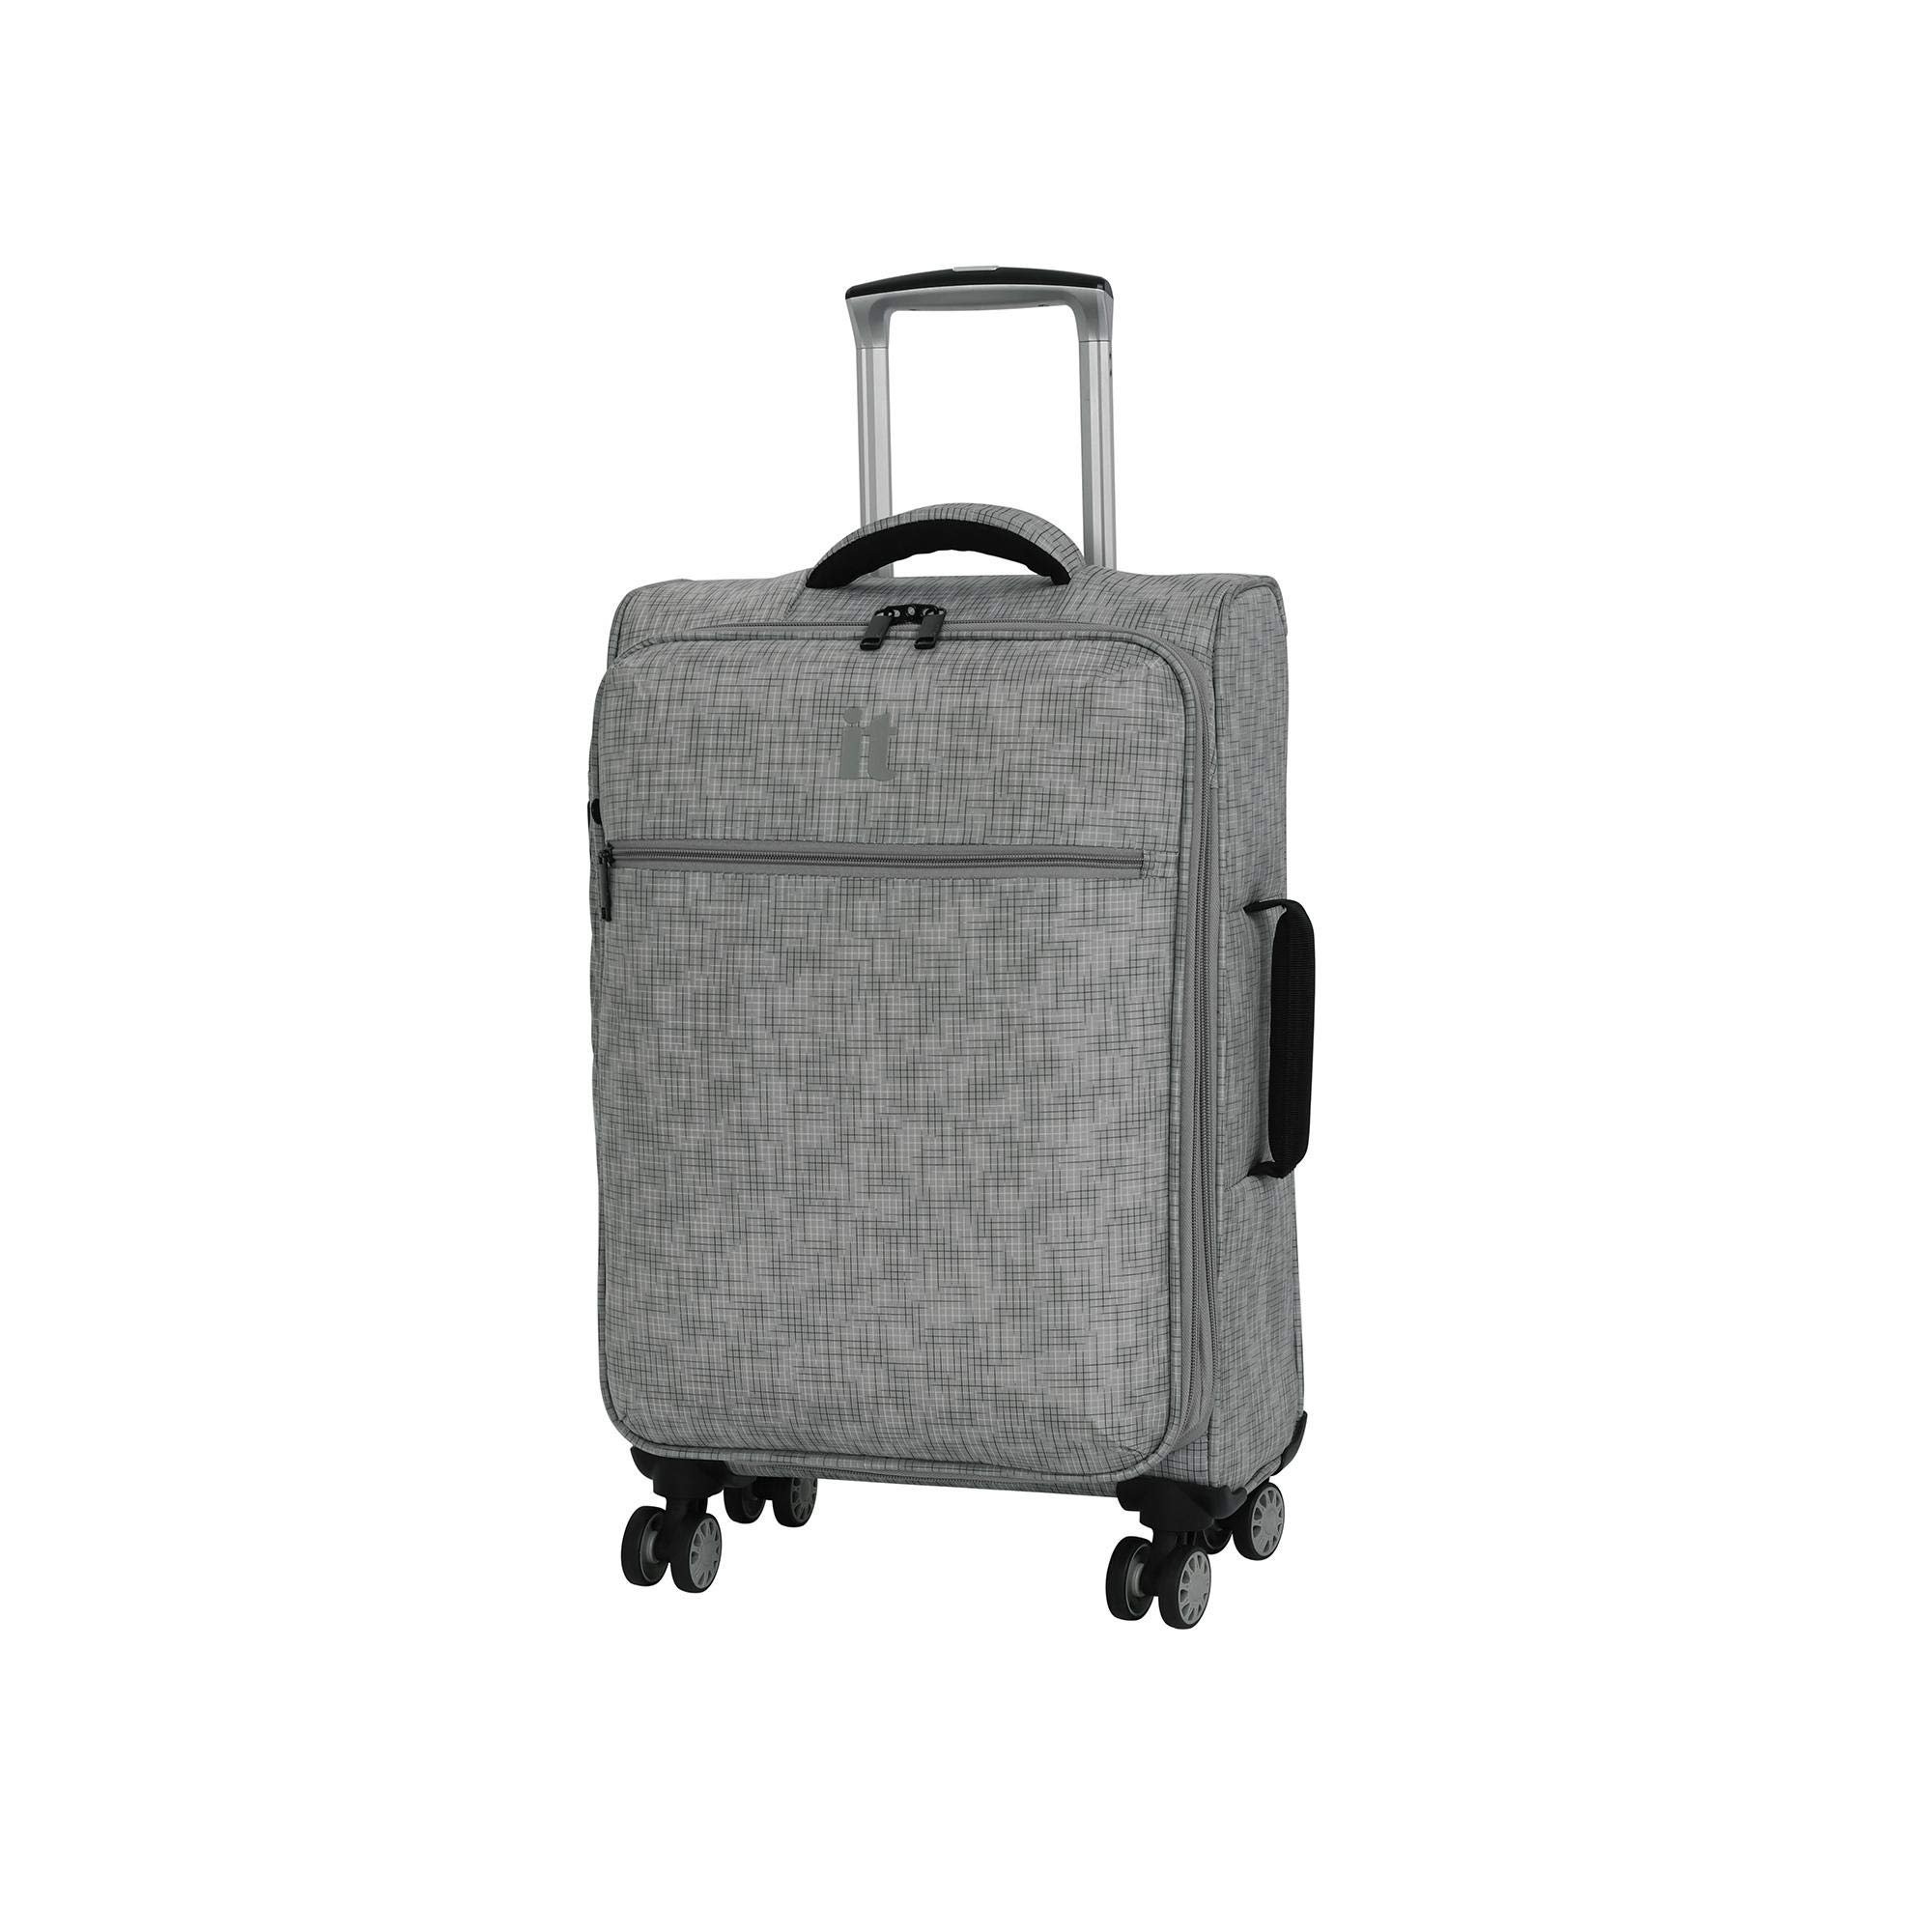 luggage Stitched Squares Lightweight Flint